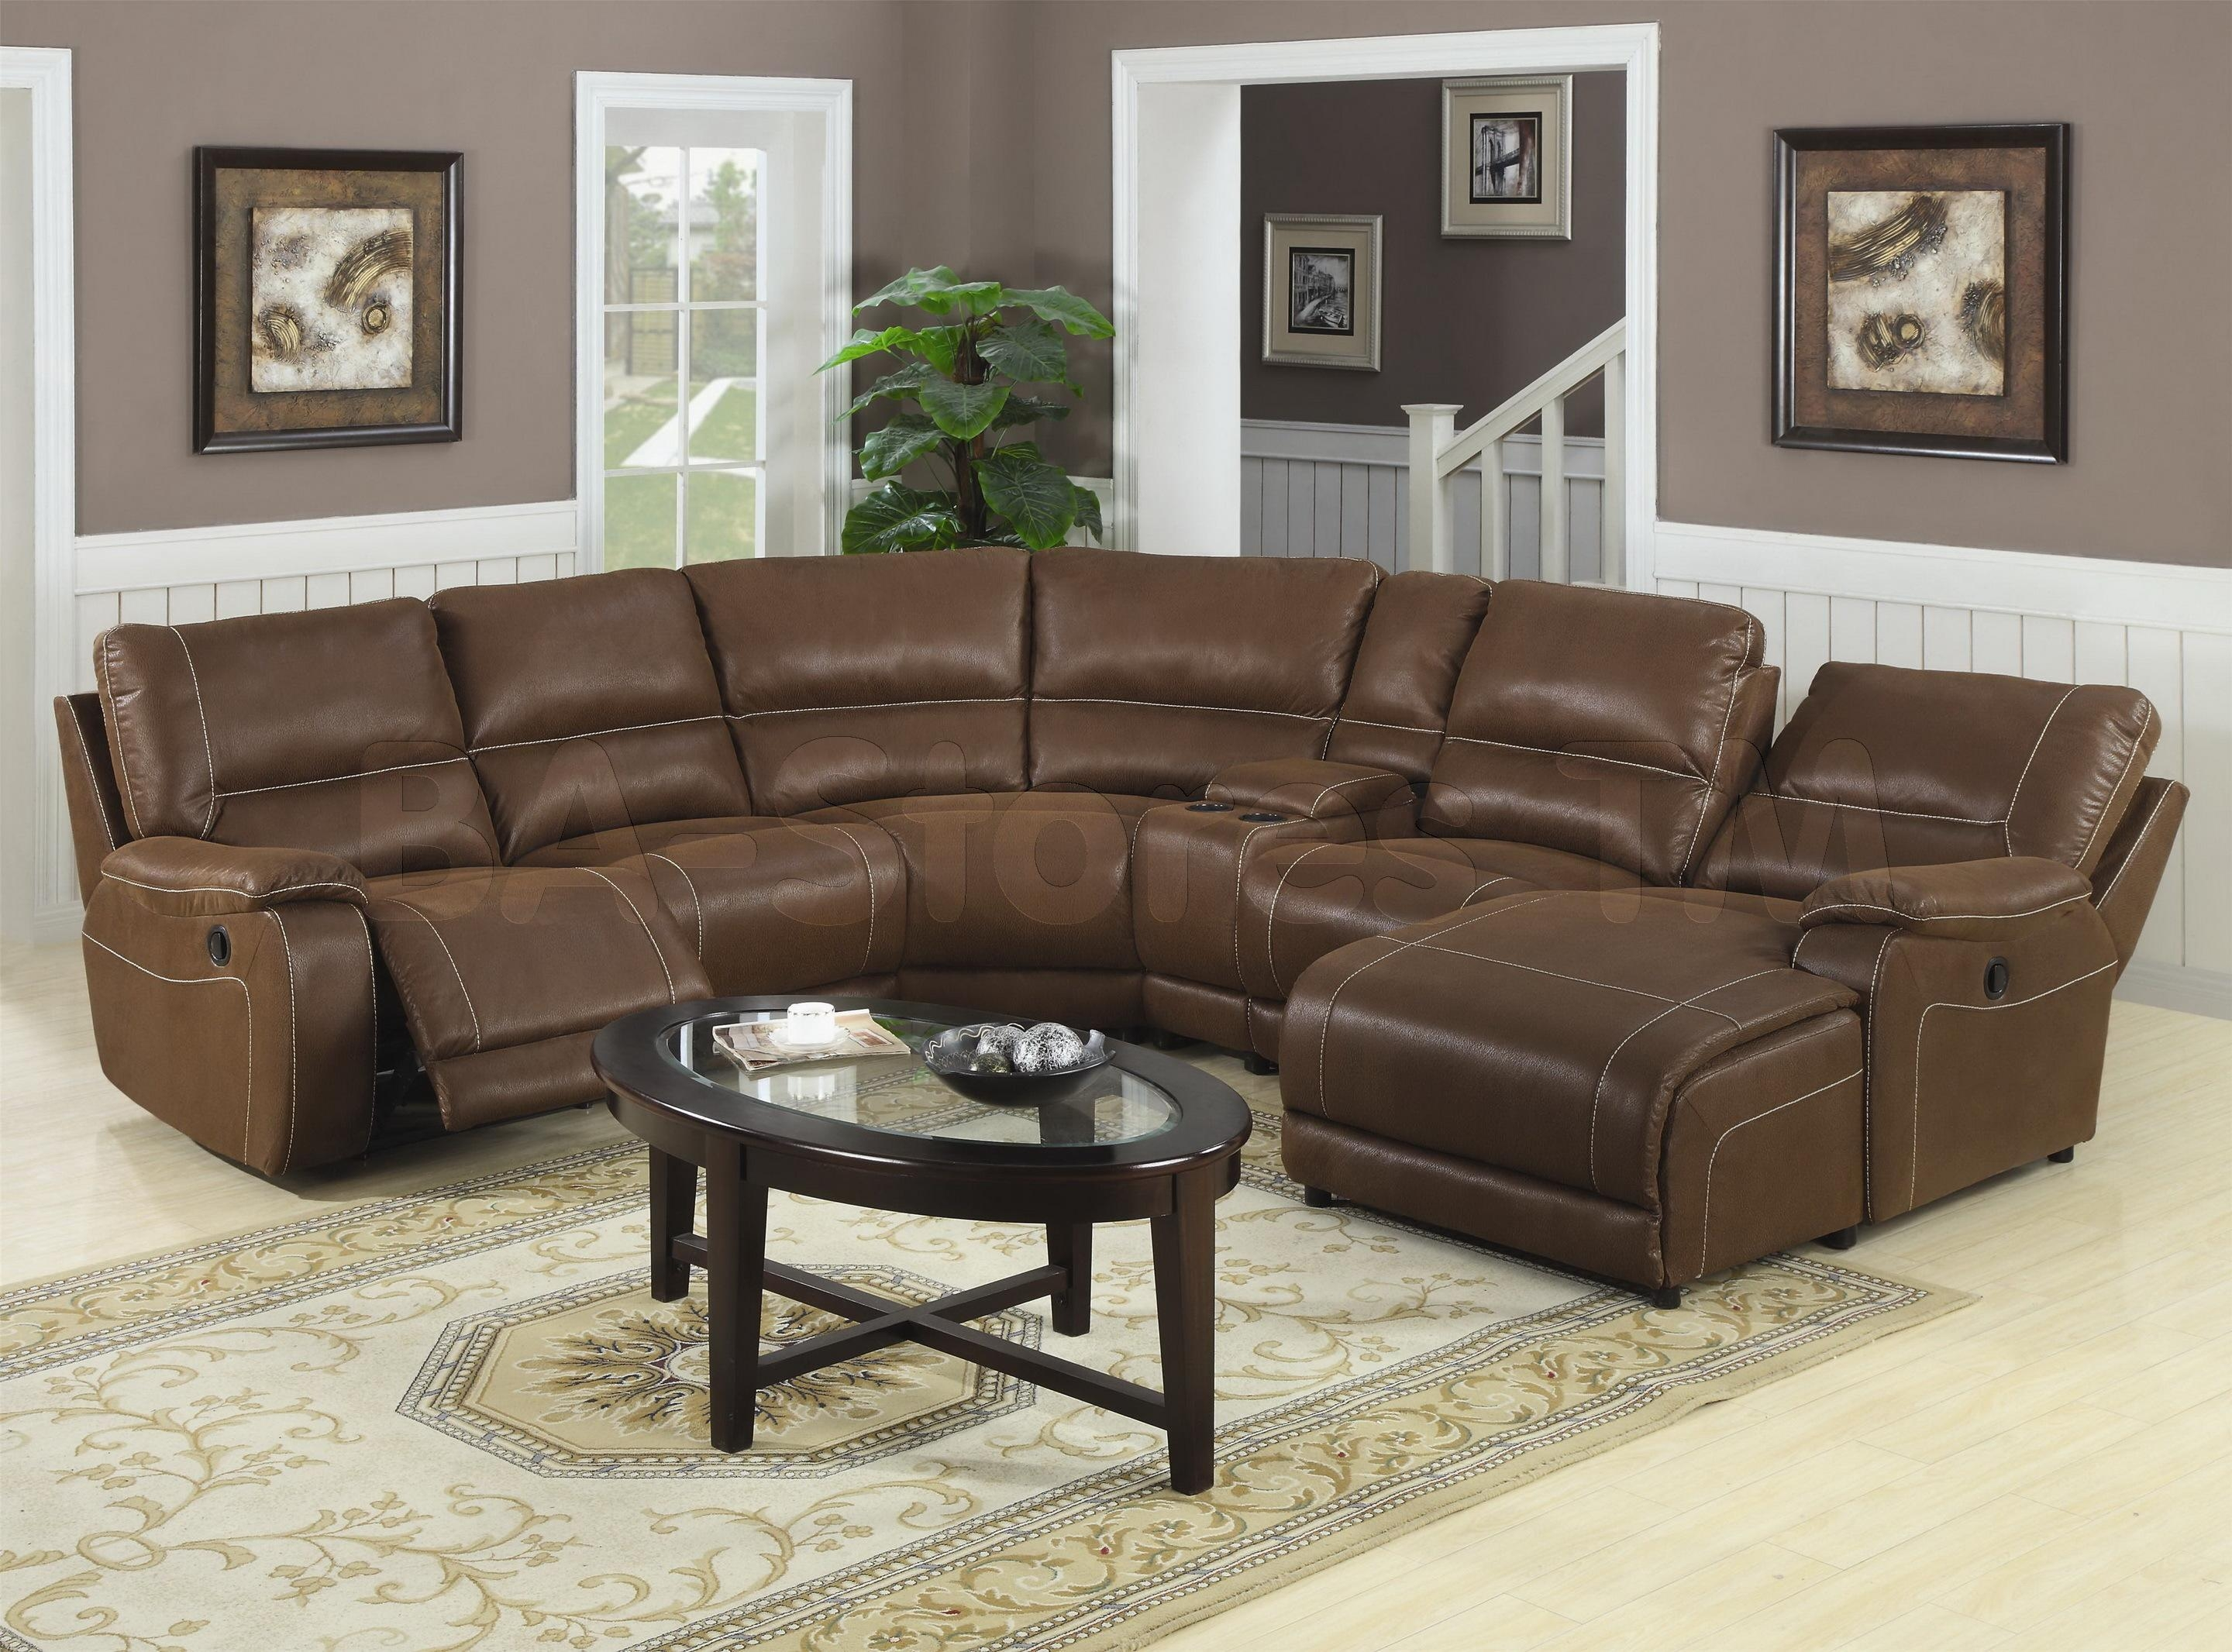 Curved Sectional Sofas For Small Spaces | Tehranmix Decoration With Regard To Small Curved Sectional Sofas (Image 8 of 20)